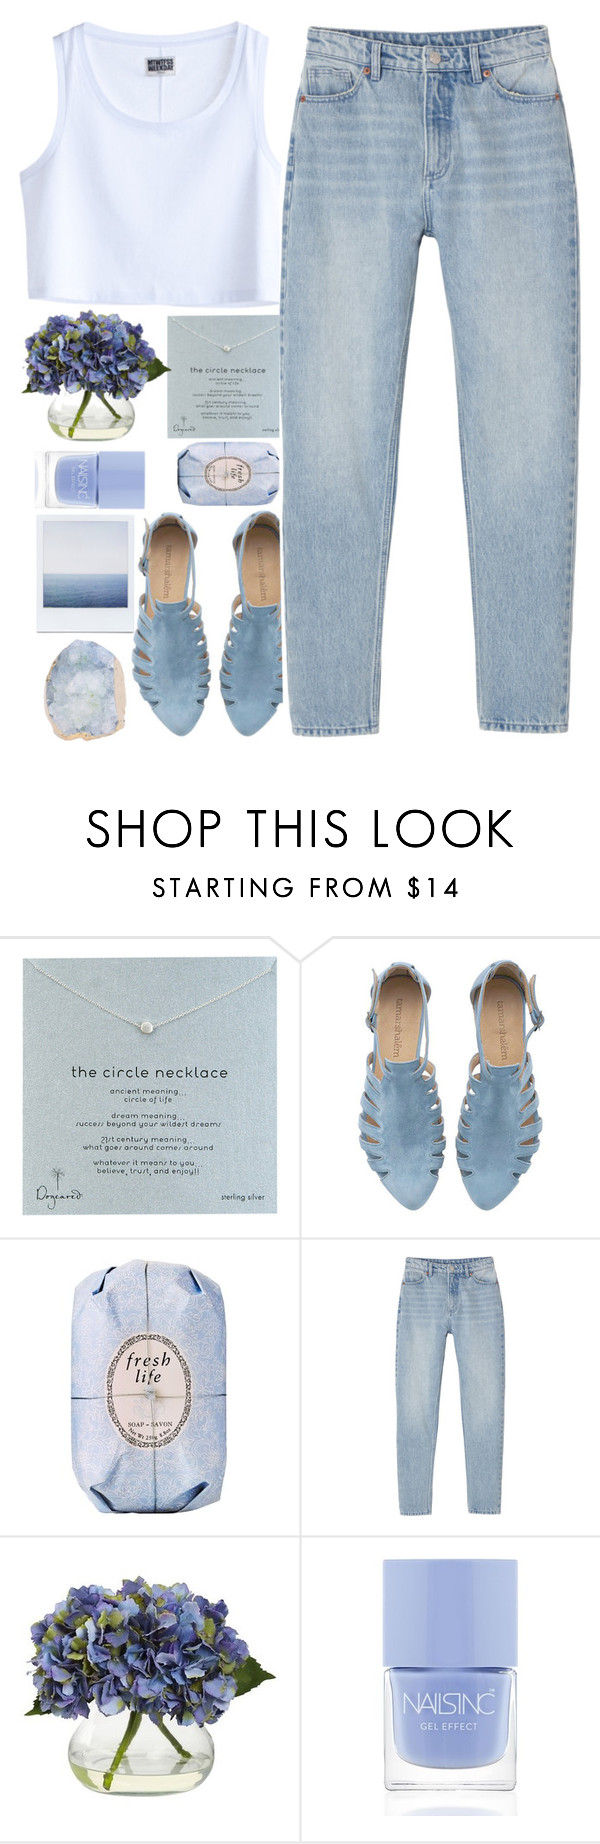 """""""blue"""" by monicanne ❤ liked on Polyvore featuring Dogeared, Fresh, MTWTFSS Weekday, Monki, Nearly Natural and Nails Inc."""